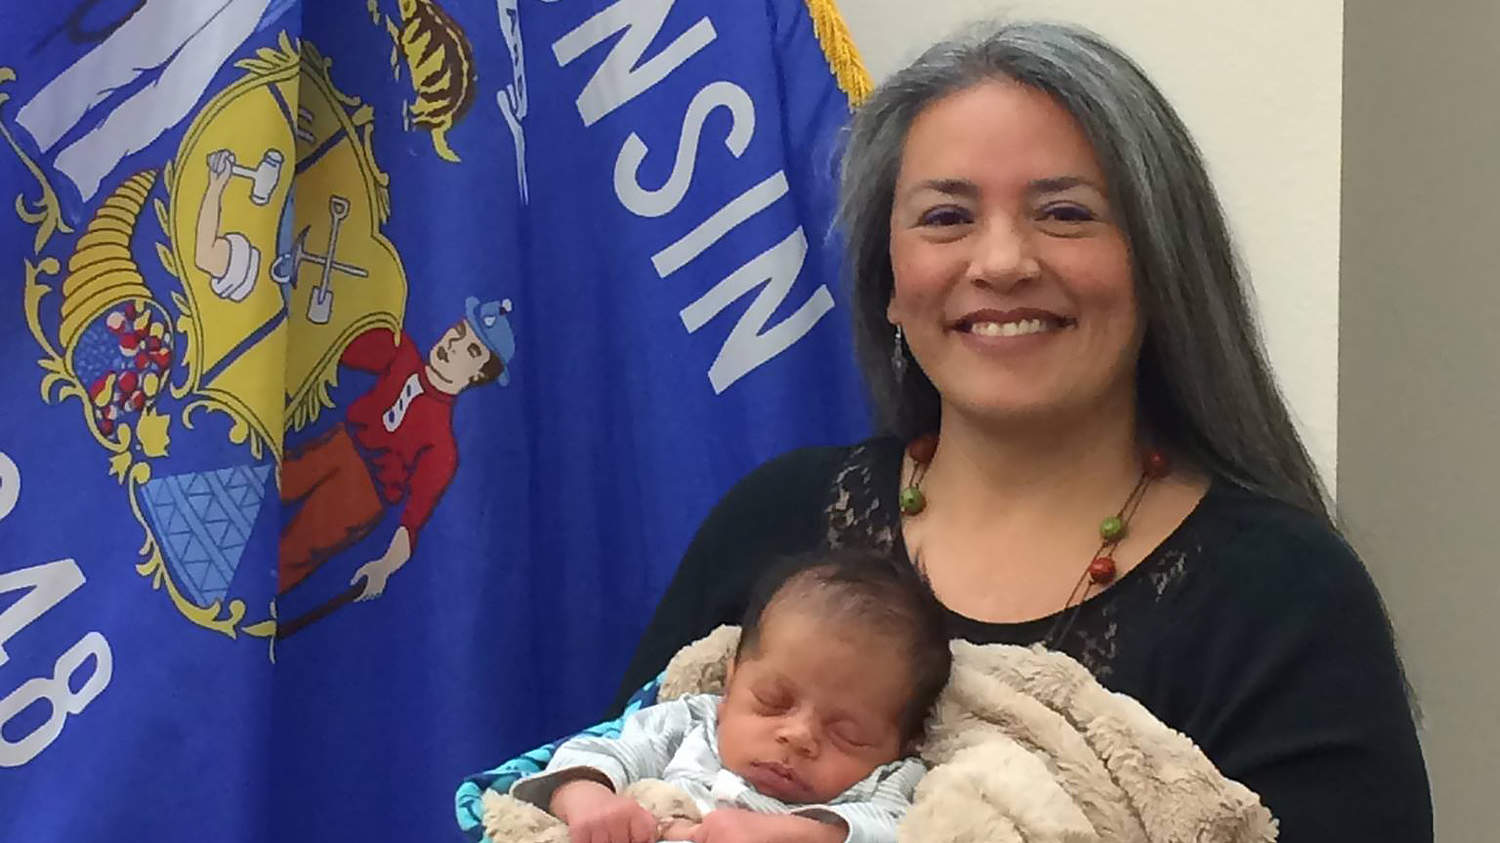 Wisconsin Councilwoman Banned from Breastfeeding During Sessions: 'I Need to Take Care of My Baby'